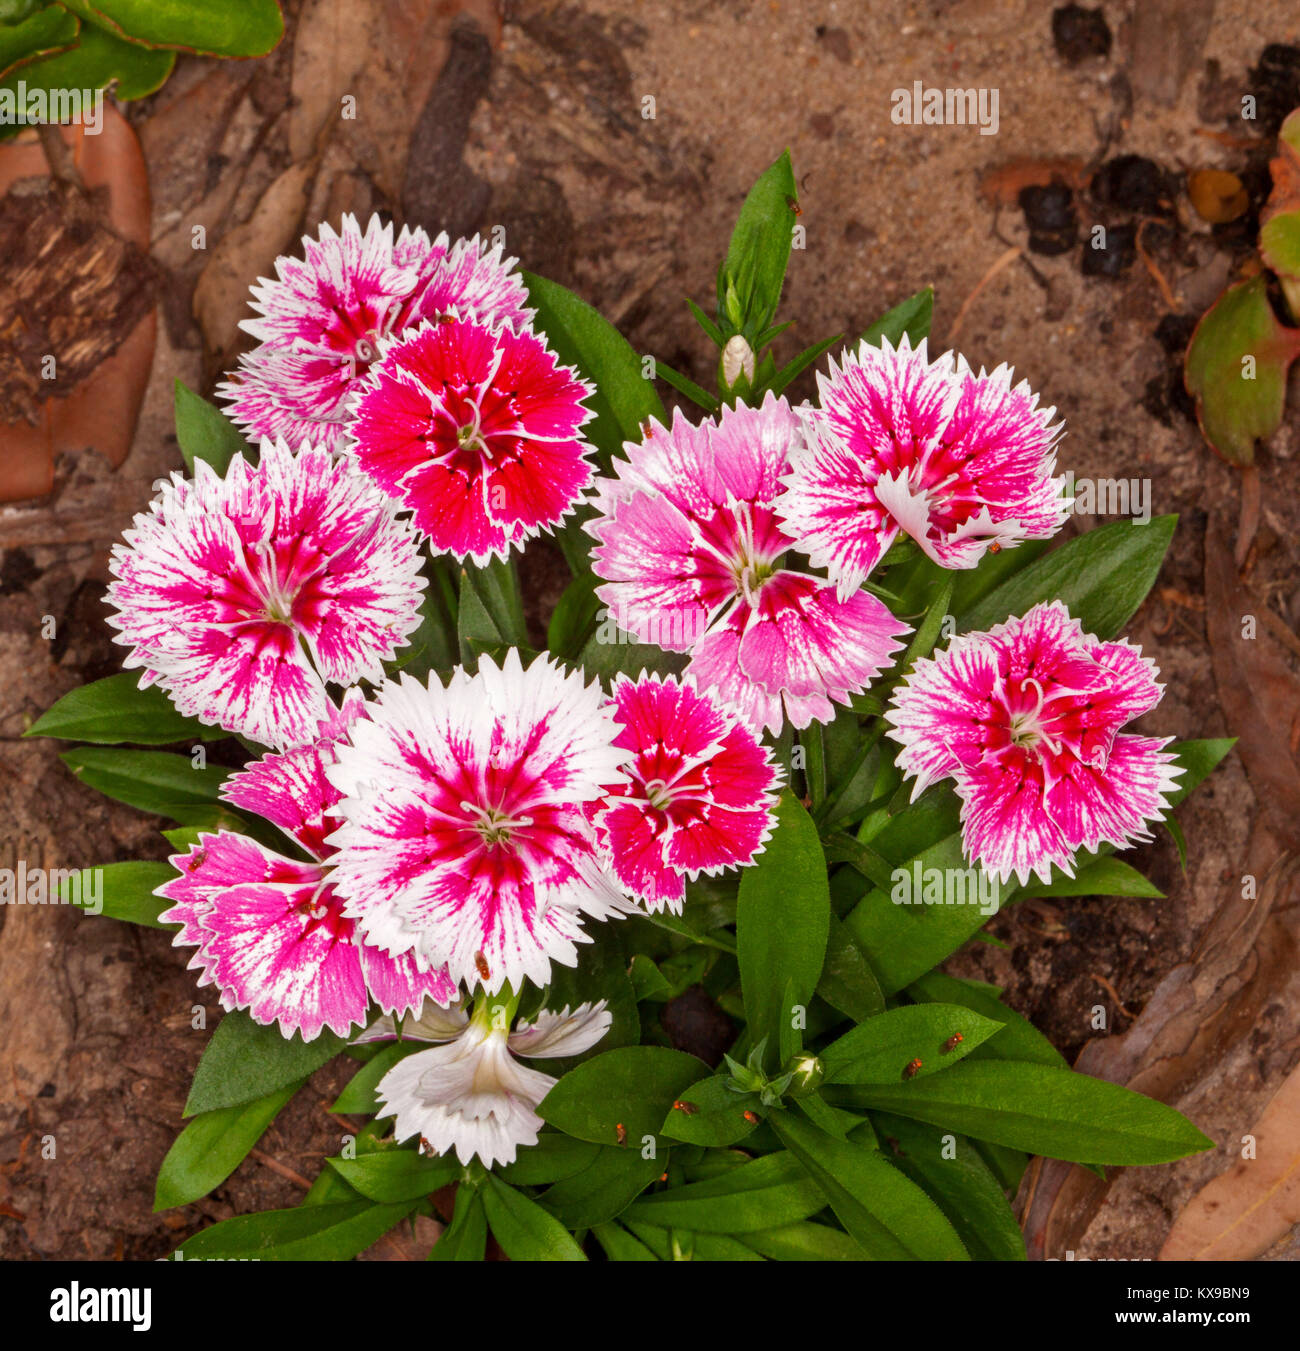 Cluster of colourful perfumed flowers, with streaked red / pink and white petals, of Dianthus barbatus, Sweet William, - Stock Image